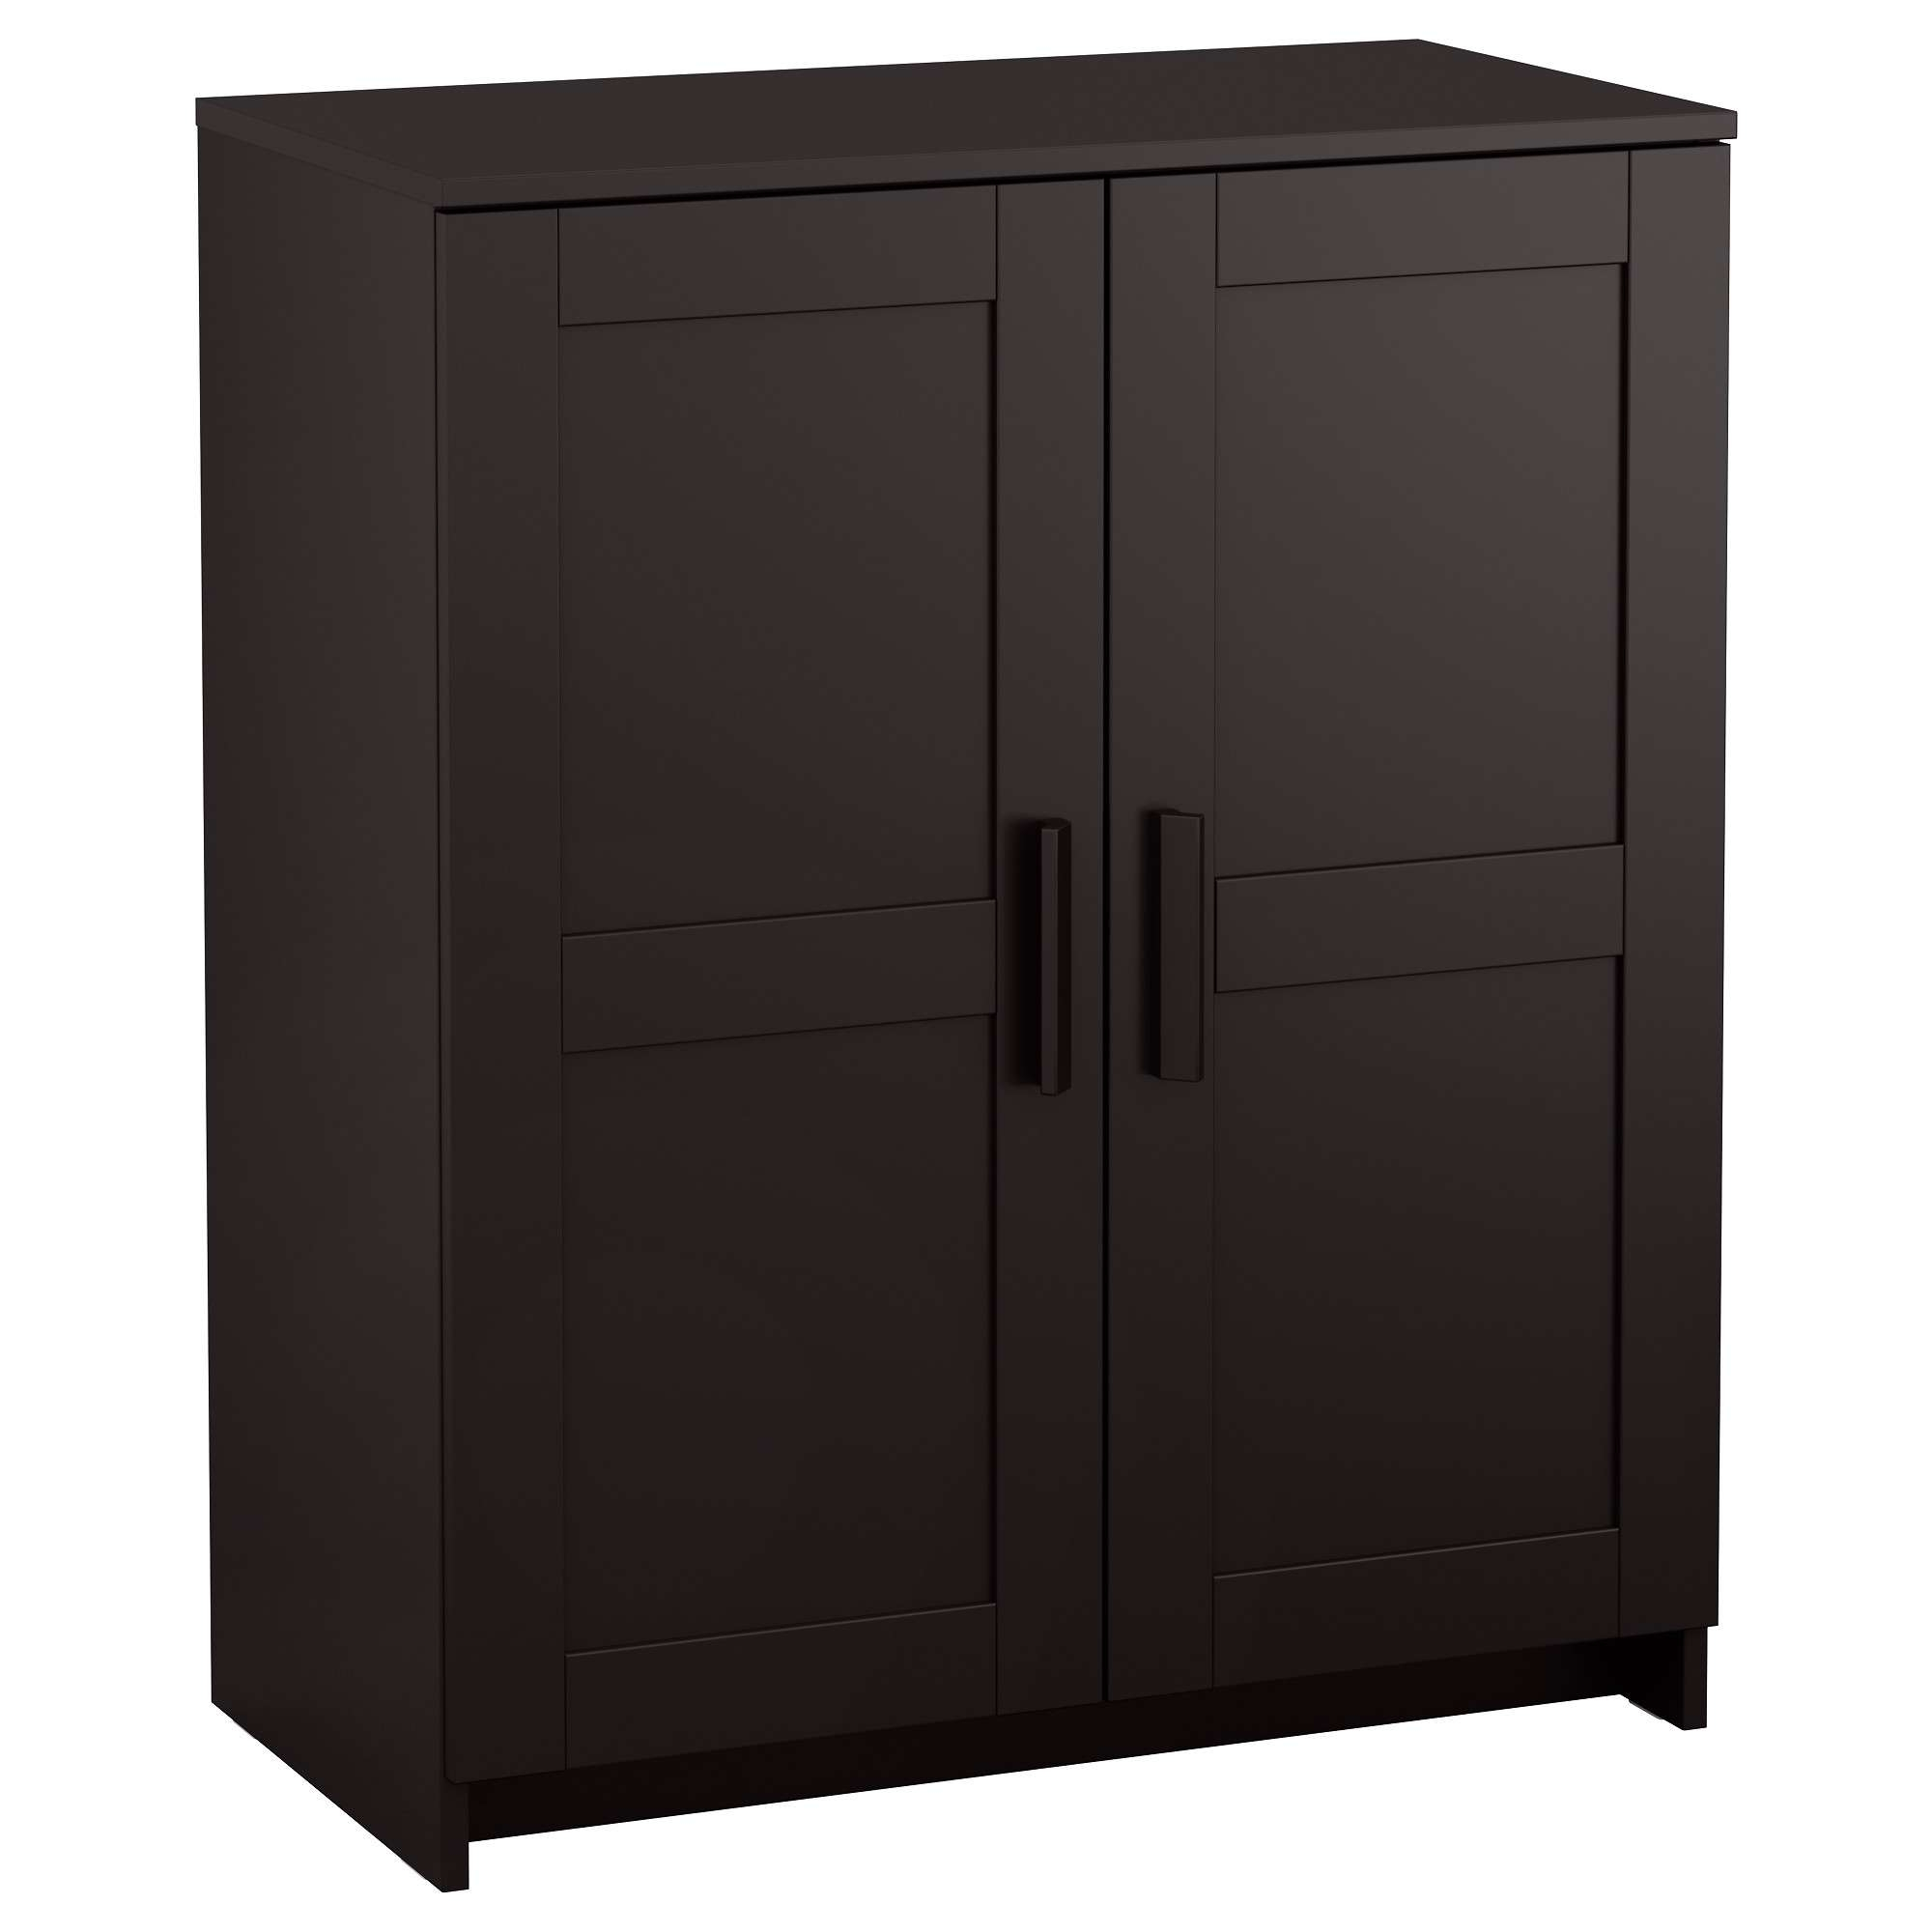 Cabinets & Sideboards – Ikea With 60 Inch Sideboards (View 10 of 20)